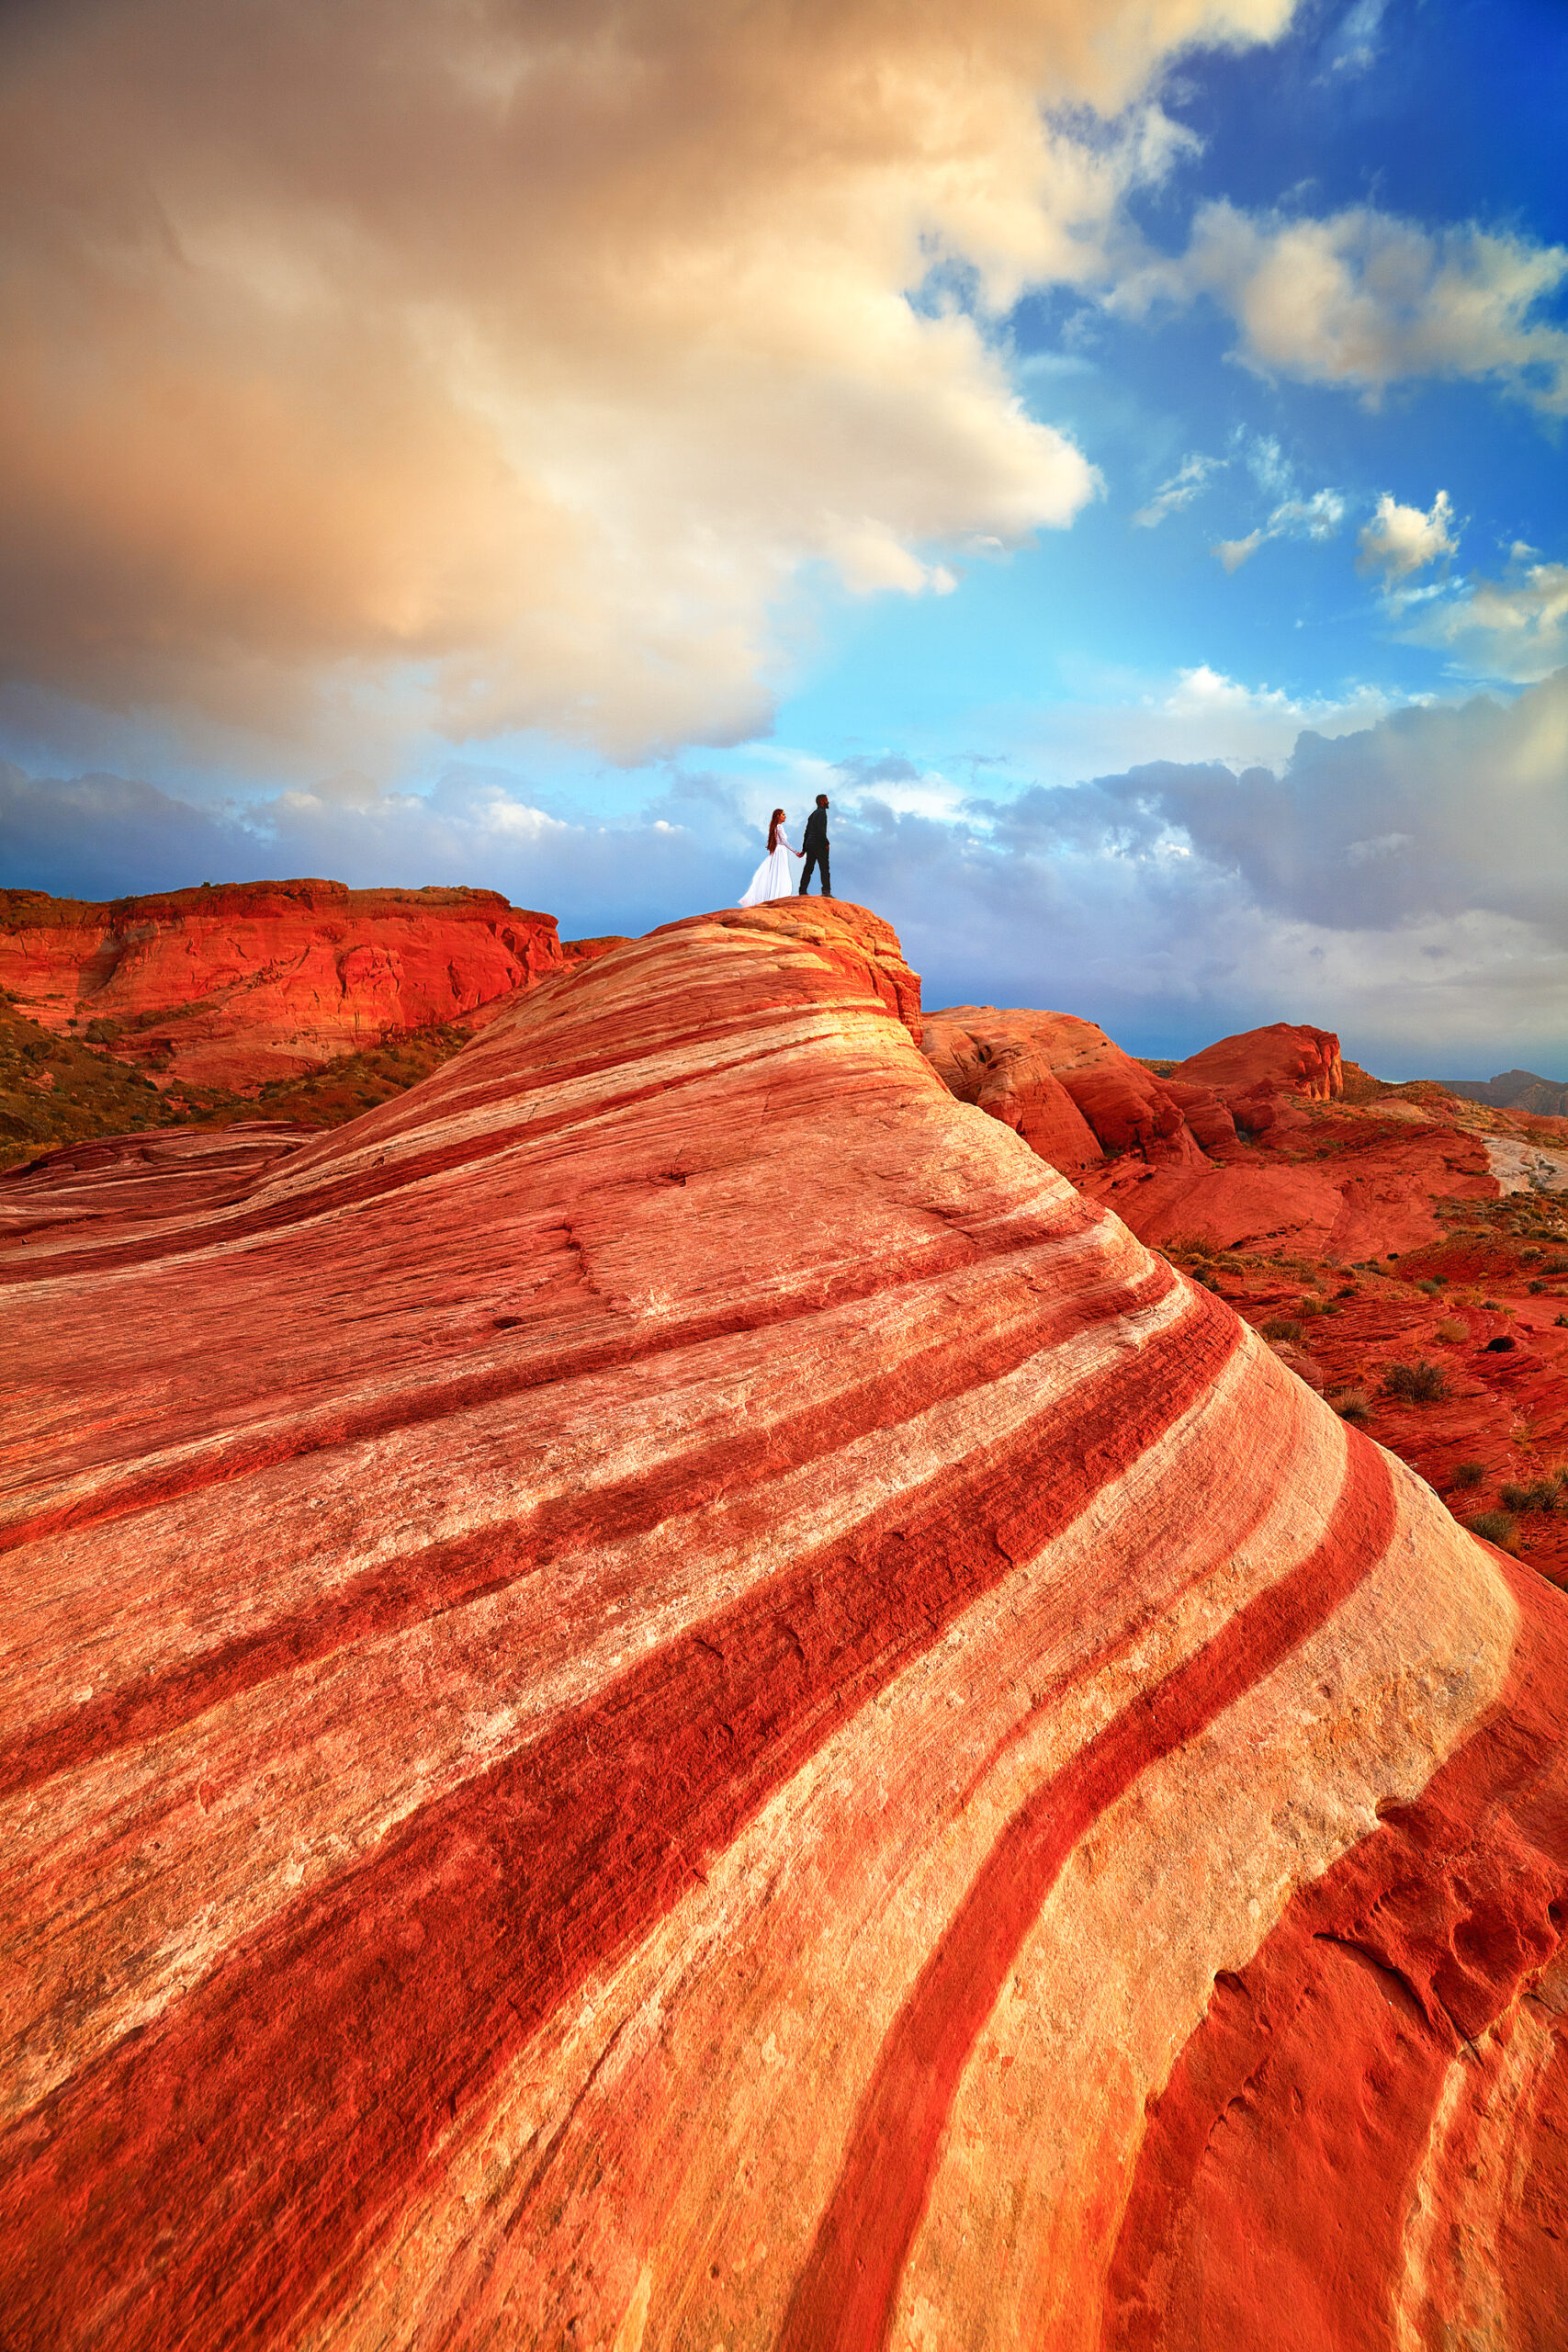 A woman in a white dress holding hands with a man in all black standing on a red and orange striped rock formation. The sky is blue and there are big fluffy clouds.